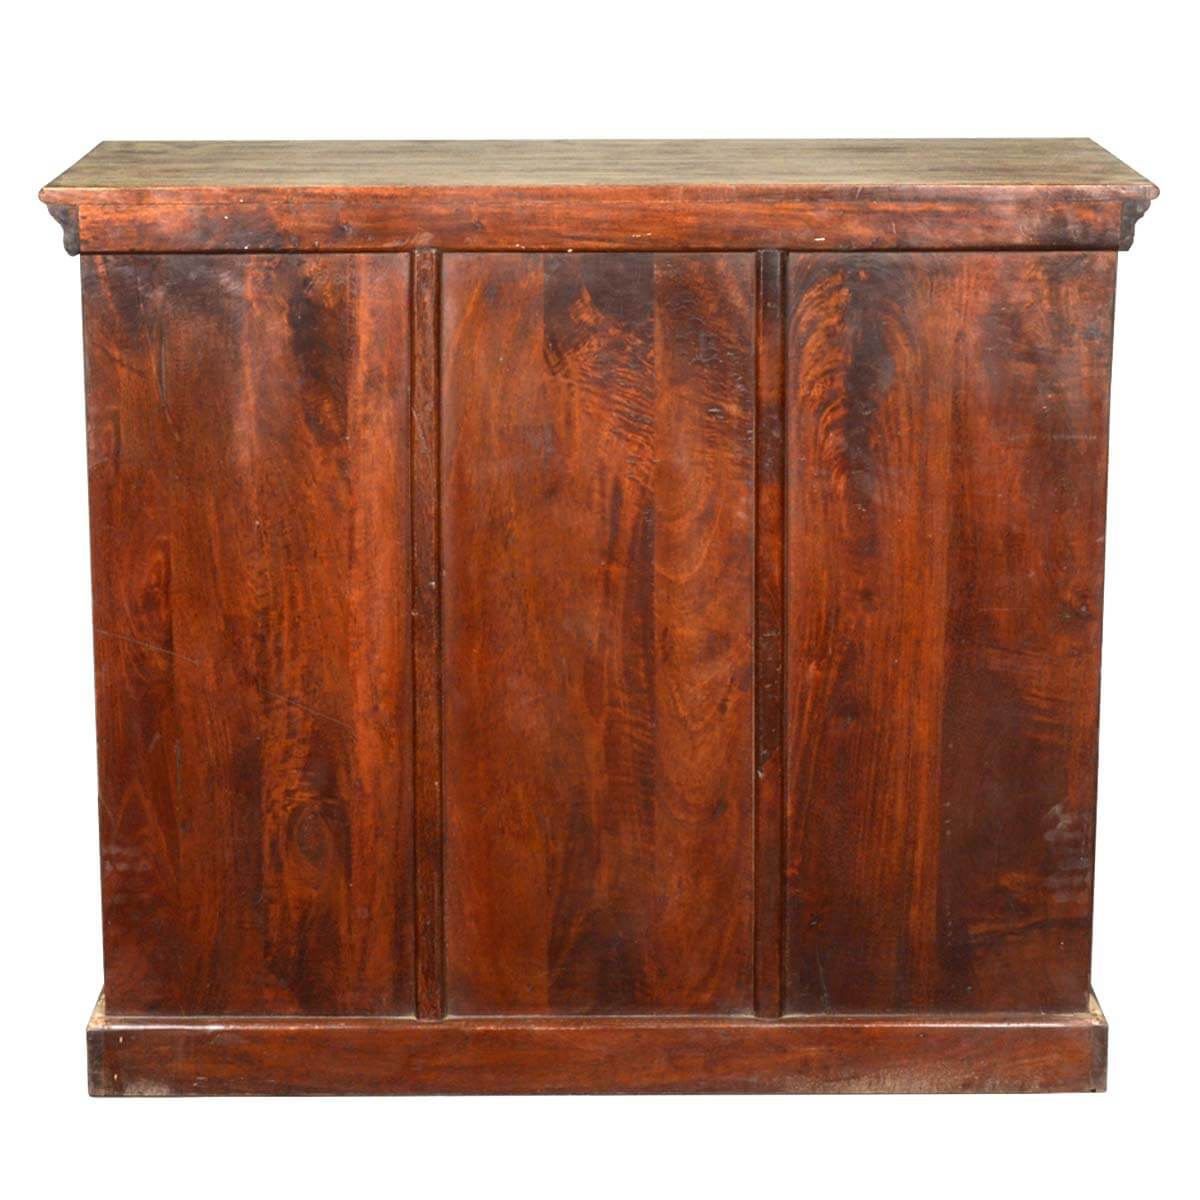 Marvelous photograph of  Reclaimed Wood Furniture Gothic Antique Rustic Sideboard Cabinet with #B27F19 color and 1200x1200 pixels